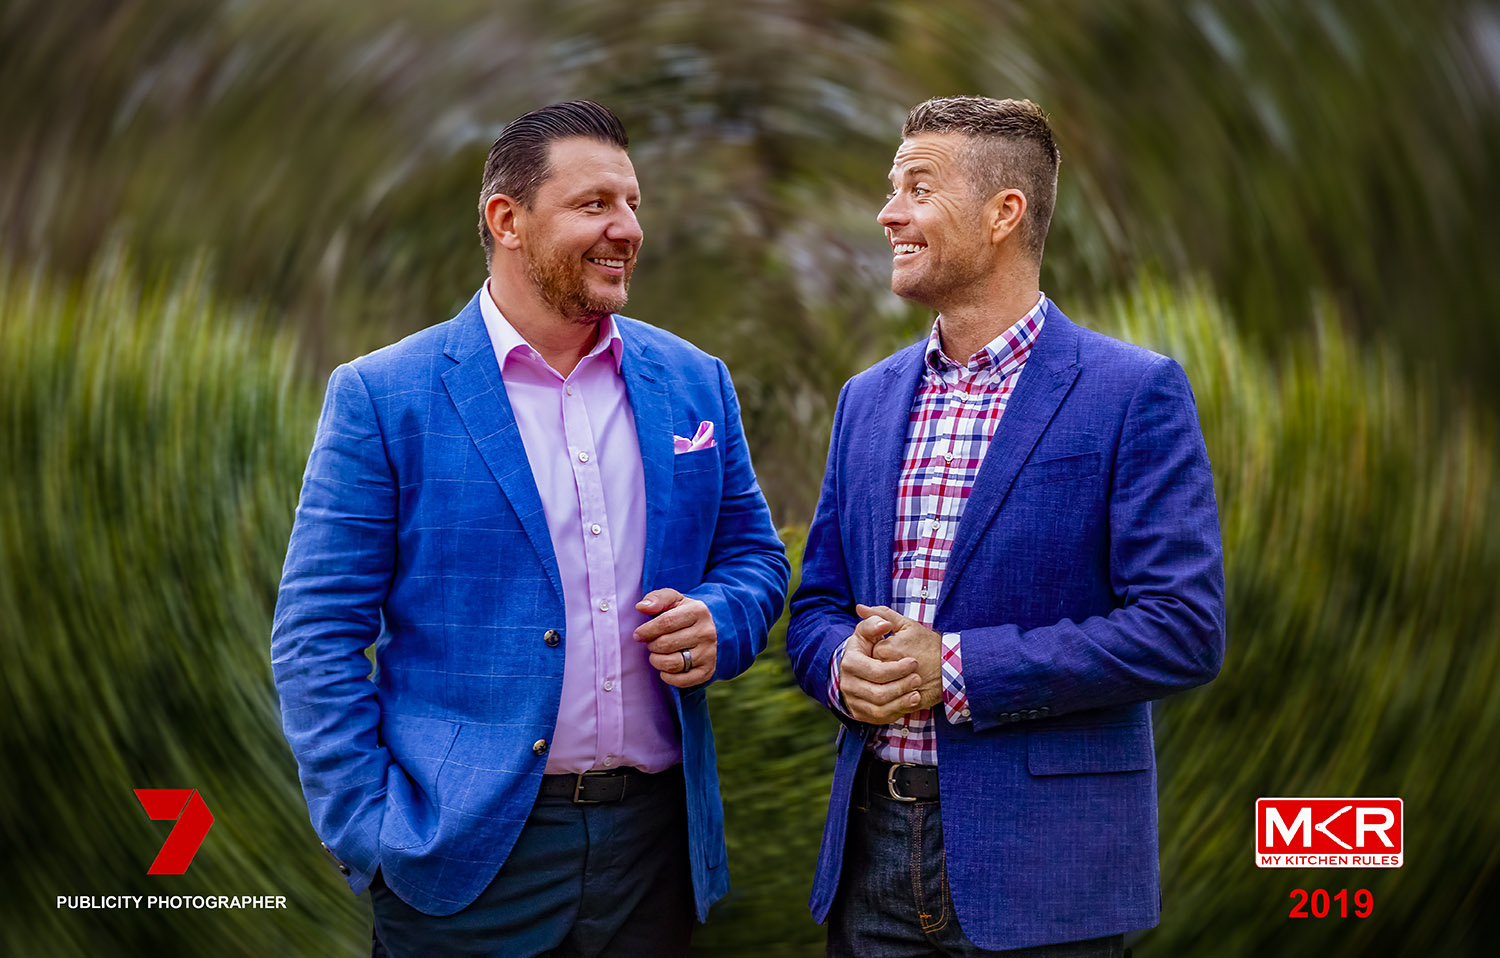 My Kitchen Rules 2019 Publicity Photographer